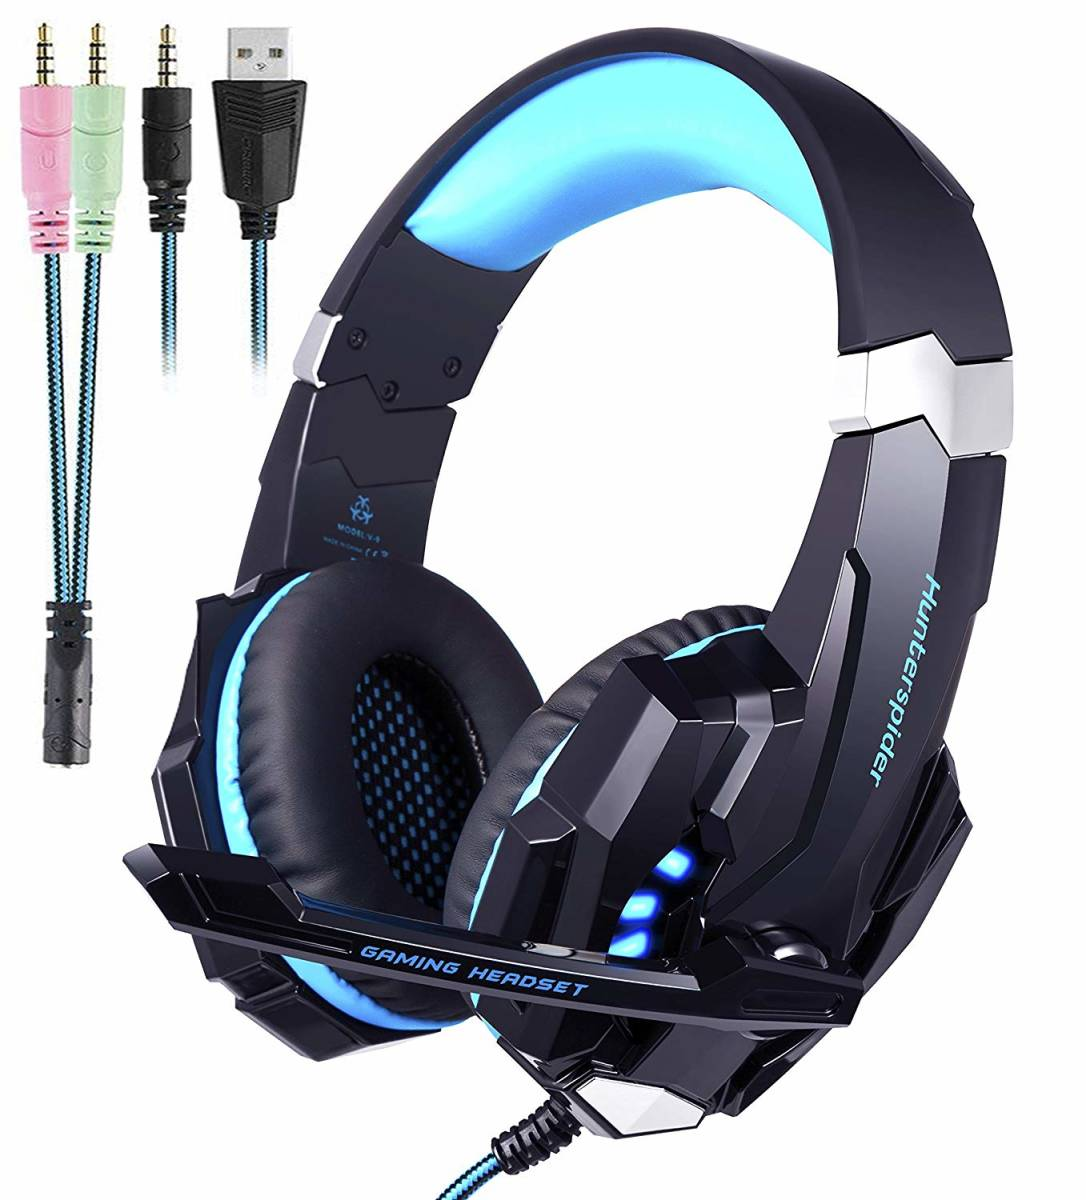 new goods *Hunterspider PS4 headset height sound quality